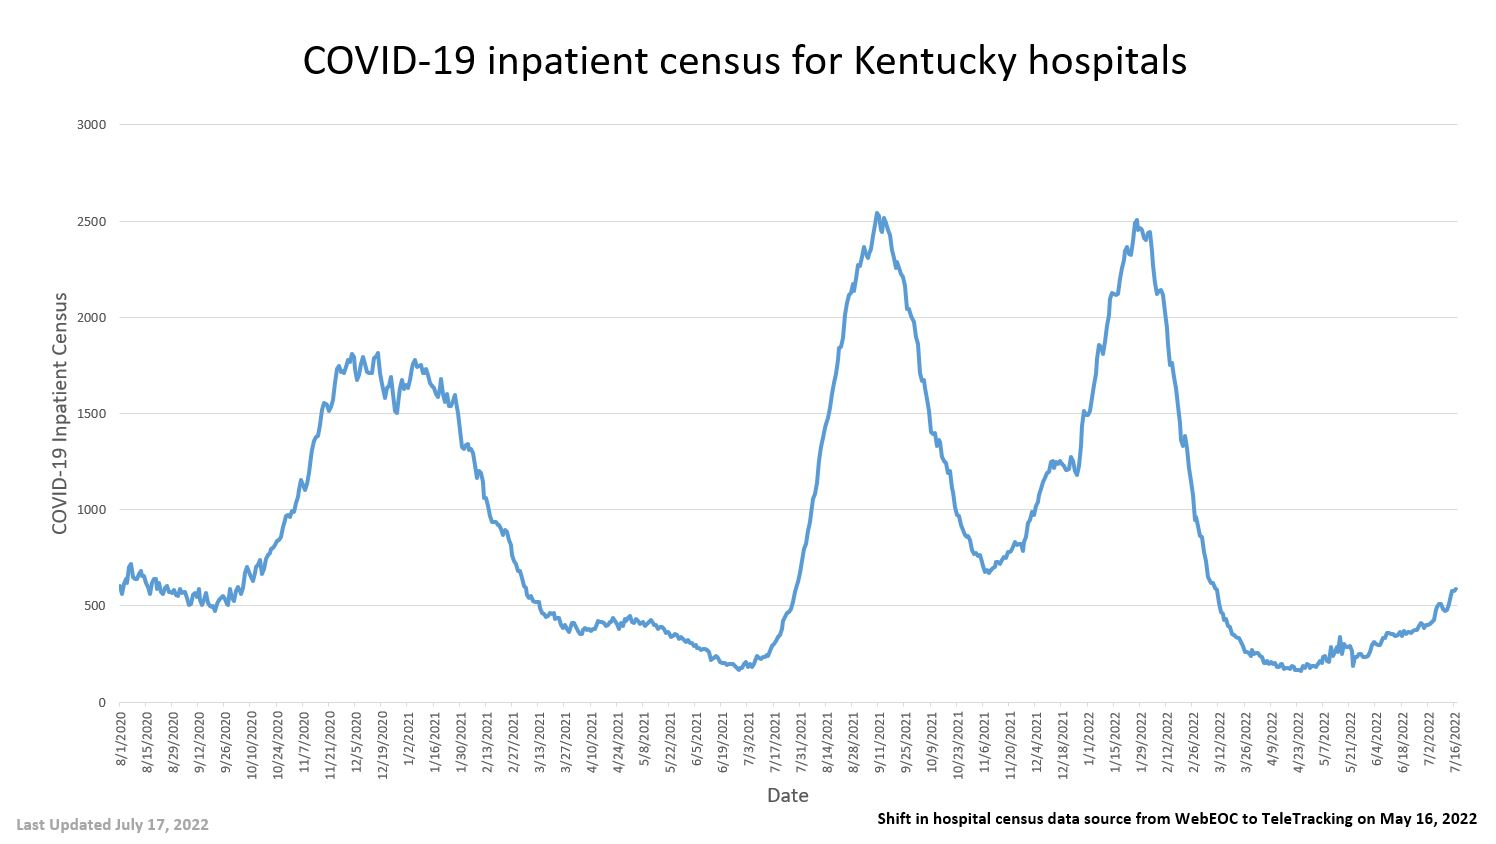 COVID-19 inpatient consus for Kentucky Hospitals - full details in pdf below images